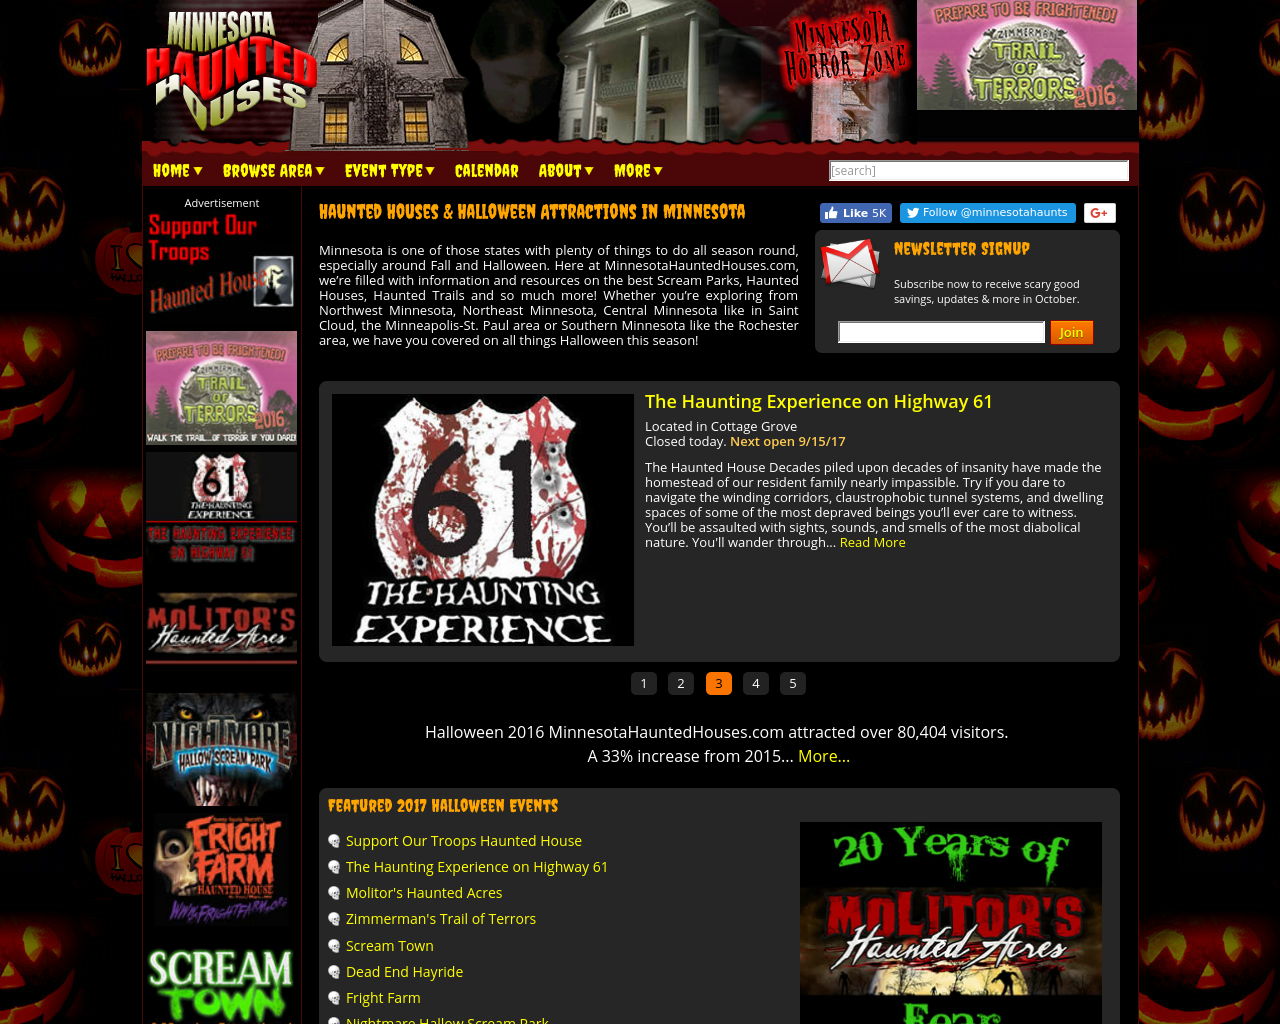 Minnesota-Haunted-Houses-Advertising-Reviews-Pricing